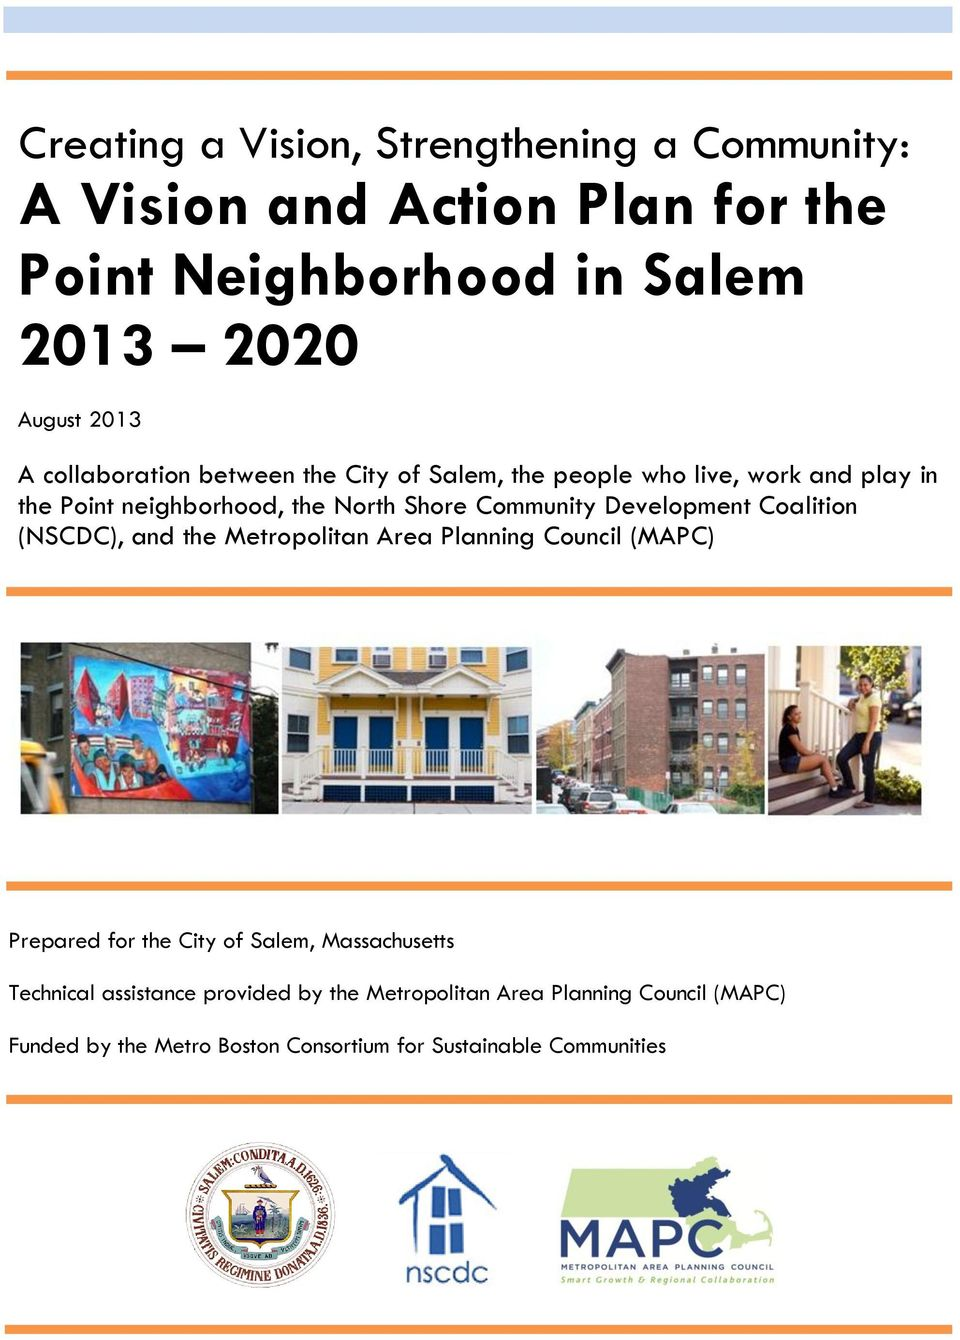 Development Coalition (NSCDC), and the Metropolitan Area Planning Council (MAPC) Prepared for the City of Salem, Massachusetts